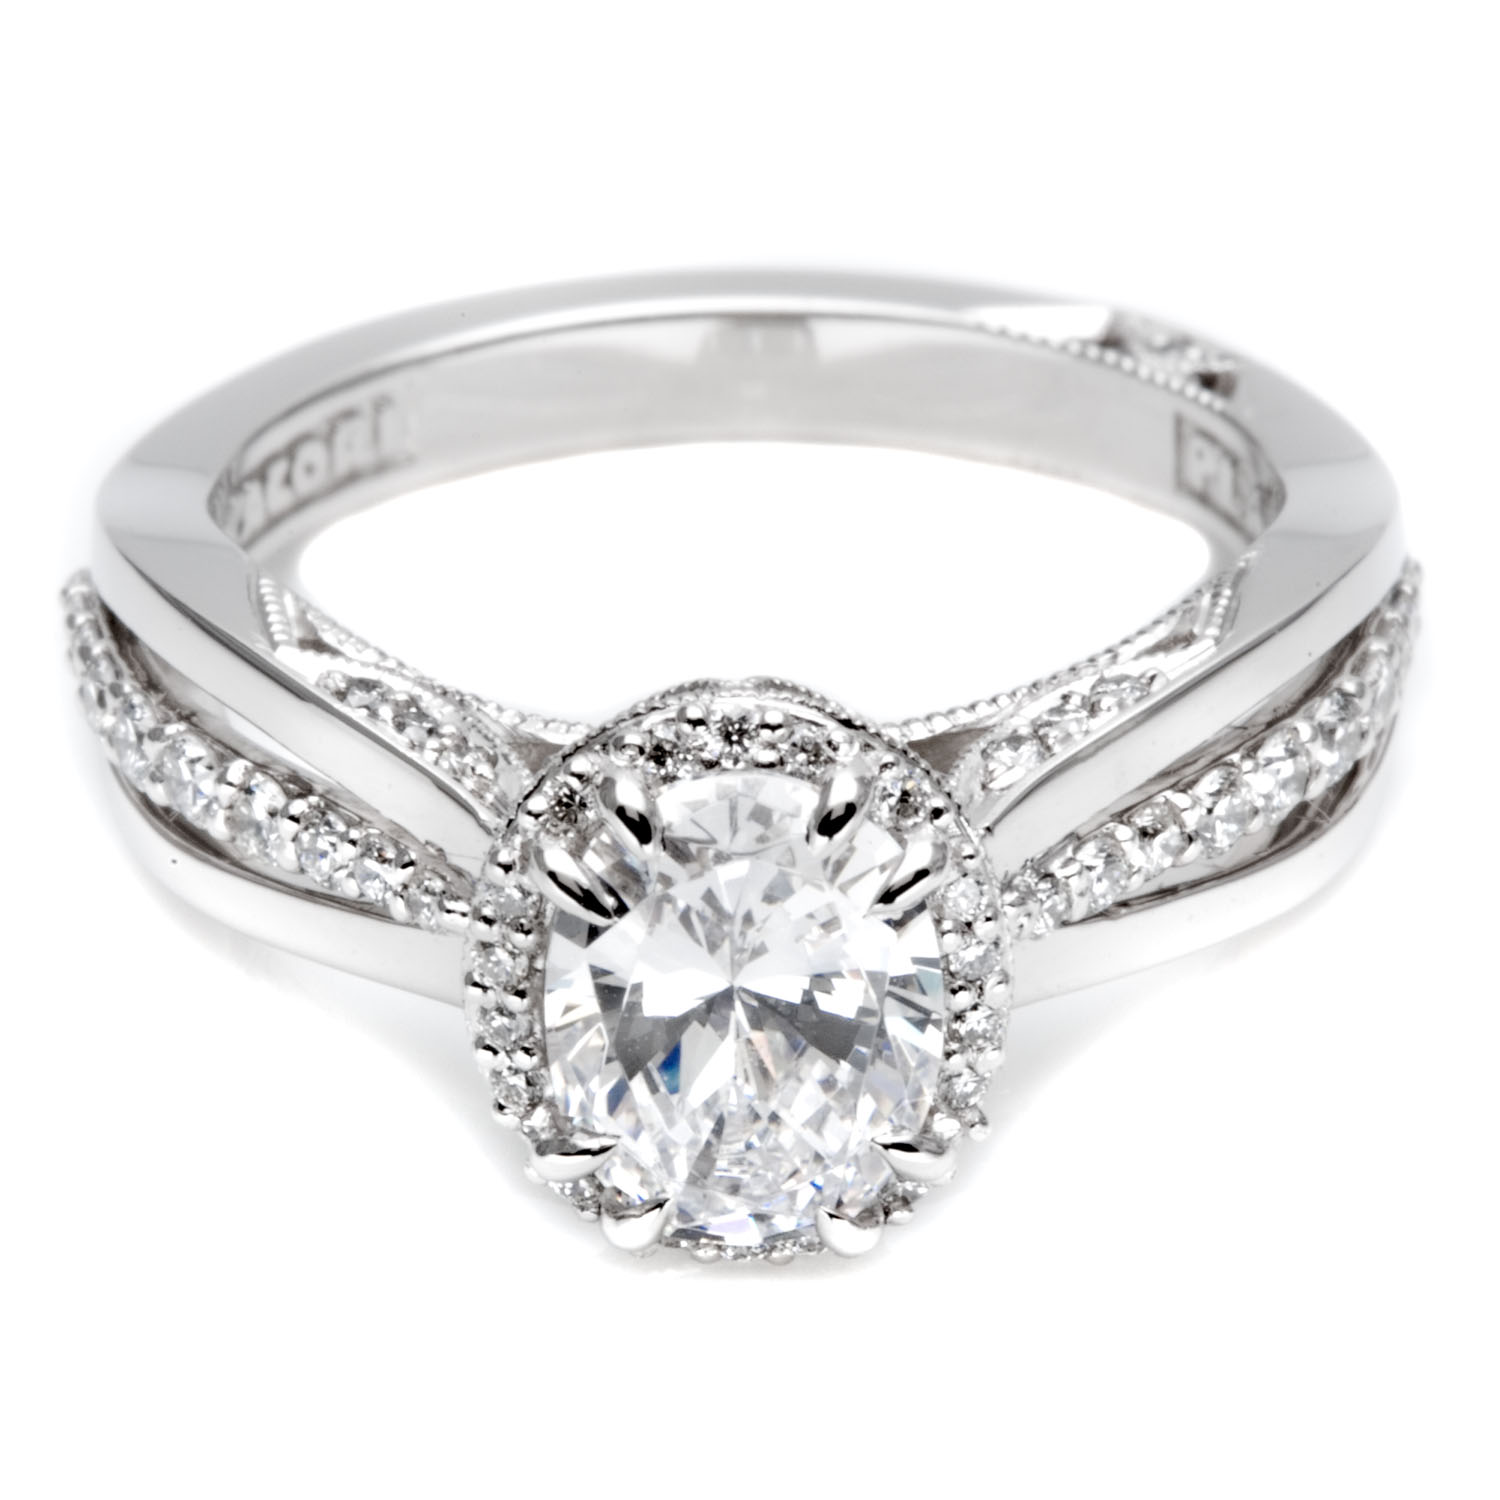 discount wedding ring sets vintage wedding ring sets Discount wedding ring sets Diamond Engagement Rings